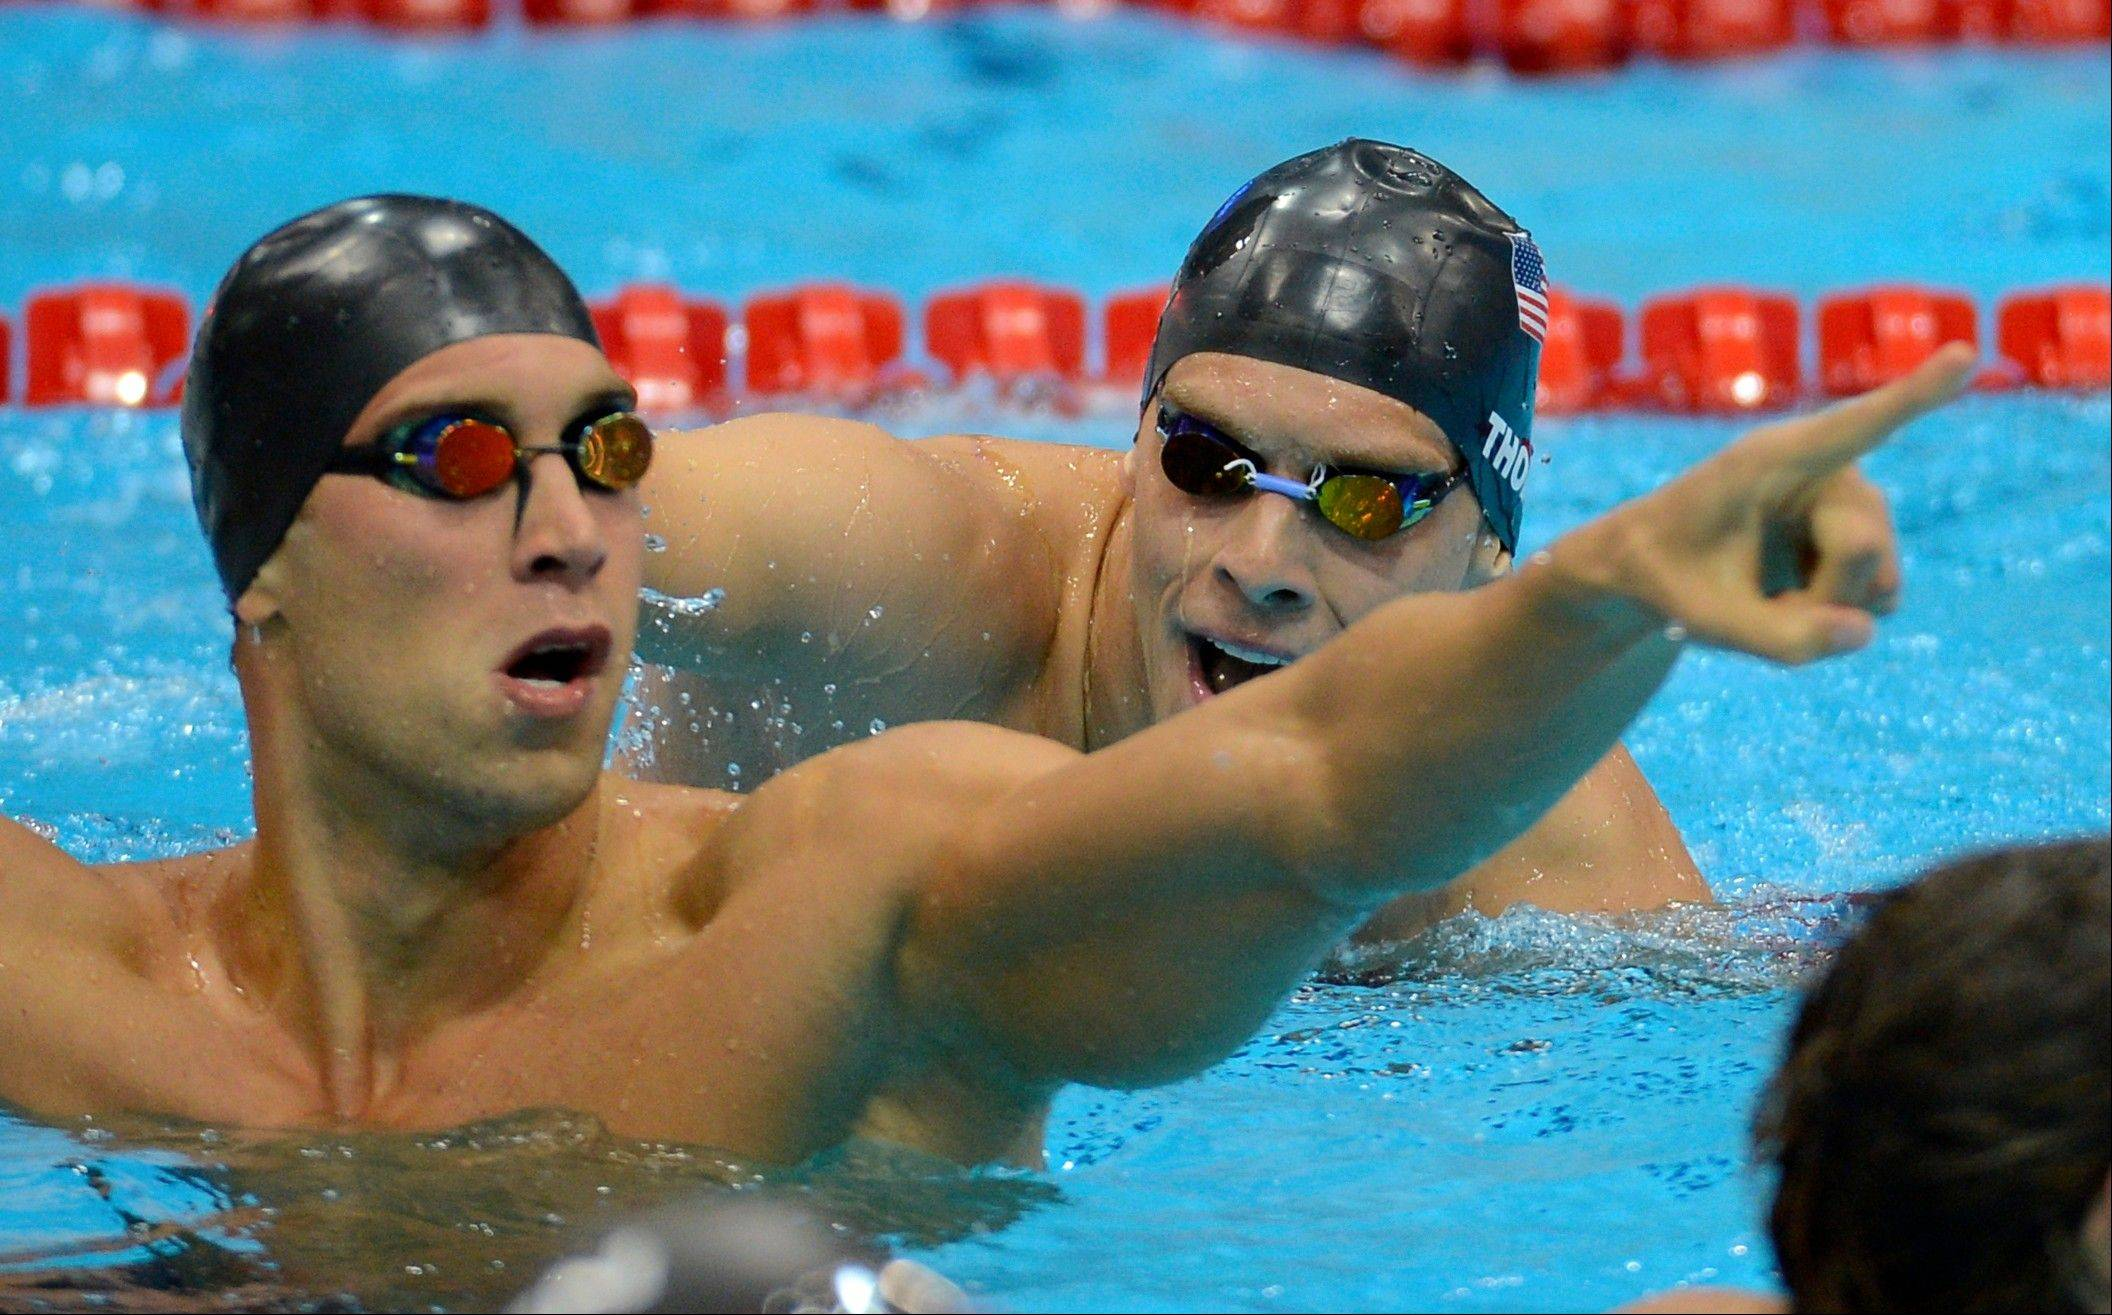 United States' Matthew Grevers, left, and United States' Nick Thoman react after the men's 100-meter backstroke swimming final at the Aquatics Centre in the Olympic Park during the 2012 Summer Olympics in London, Monday, July 30, 2012. Grevers won gold, Thoman silver.